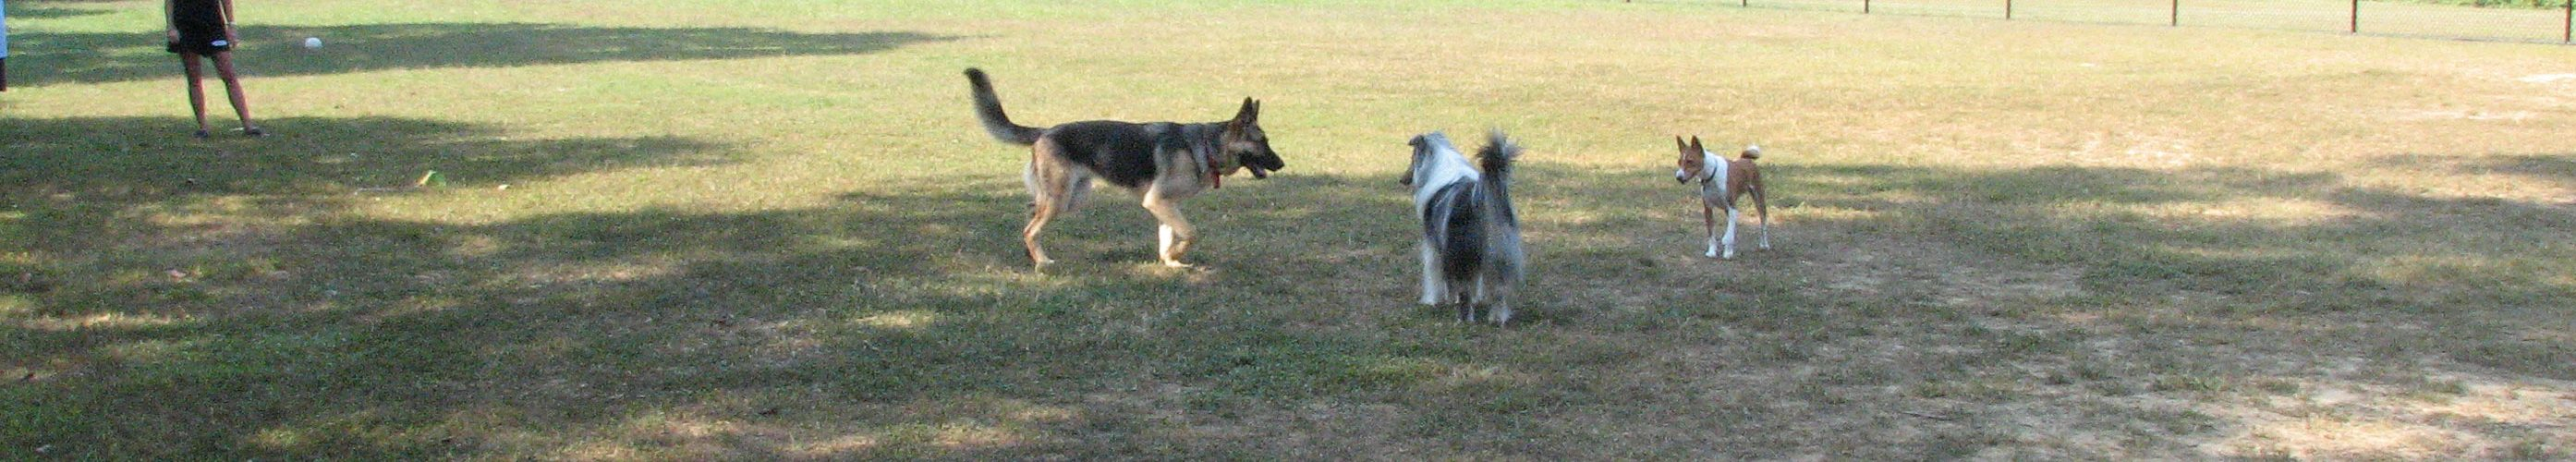 Blydenburgh Dog Park